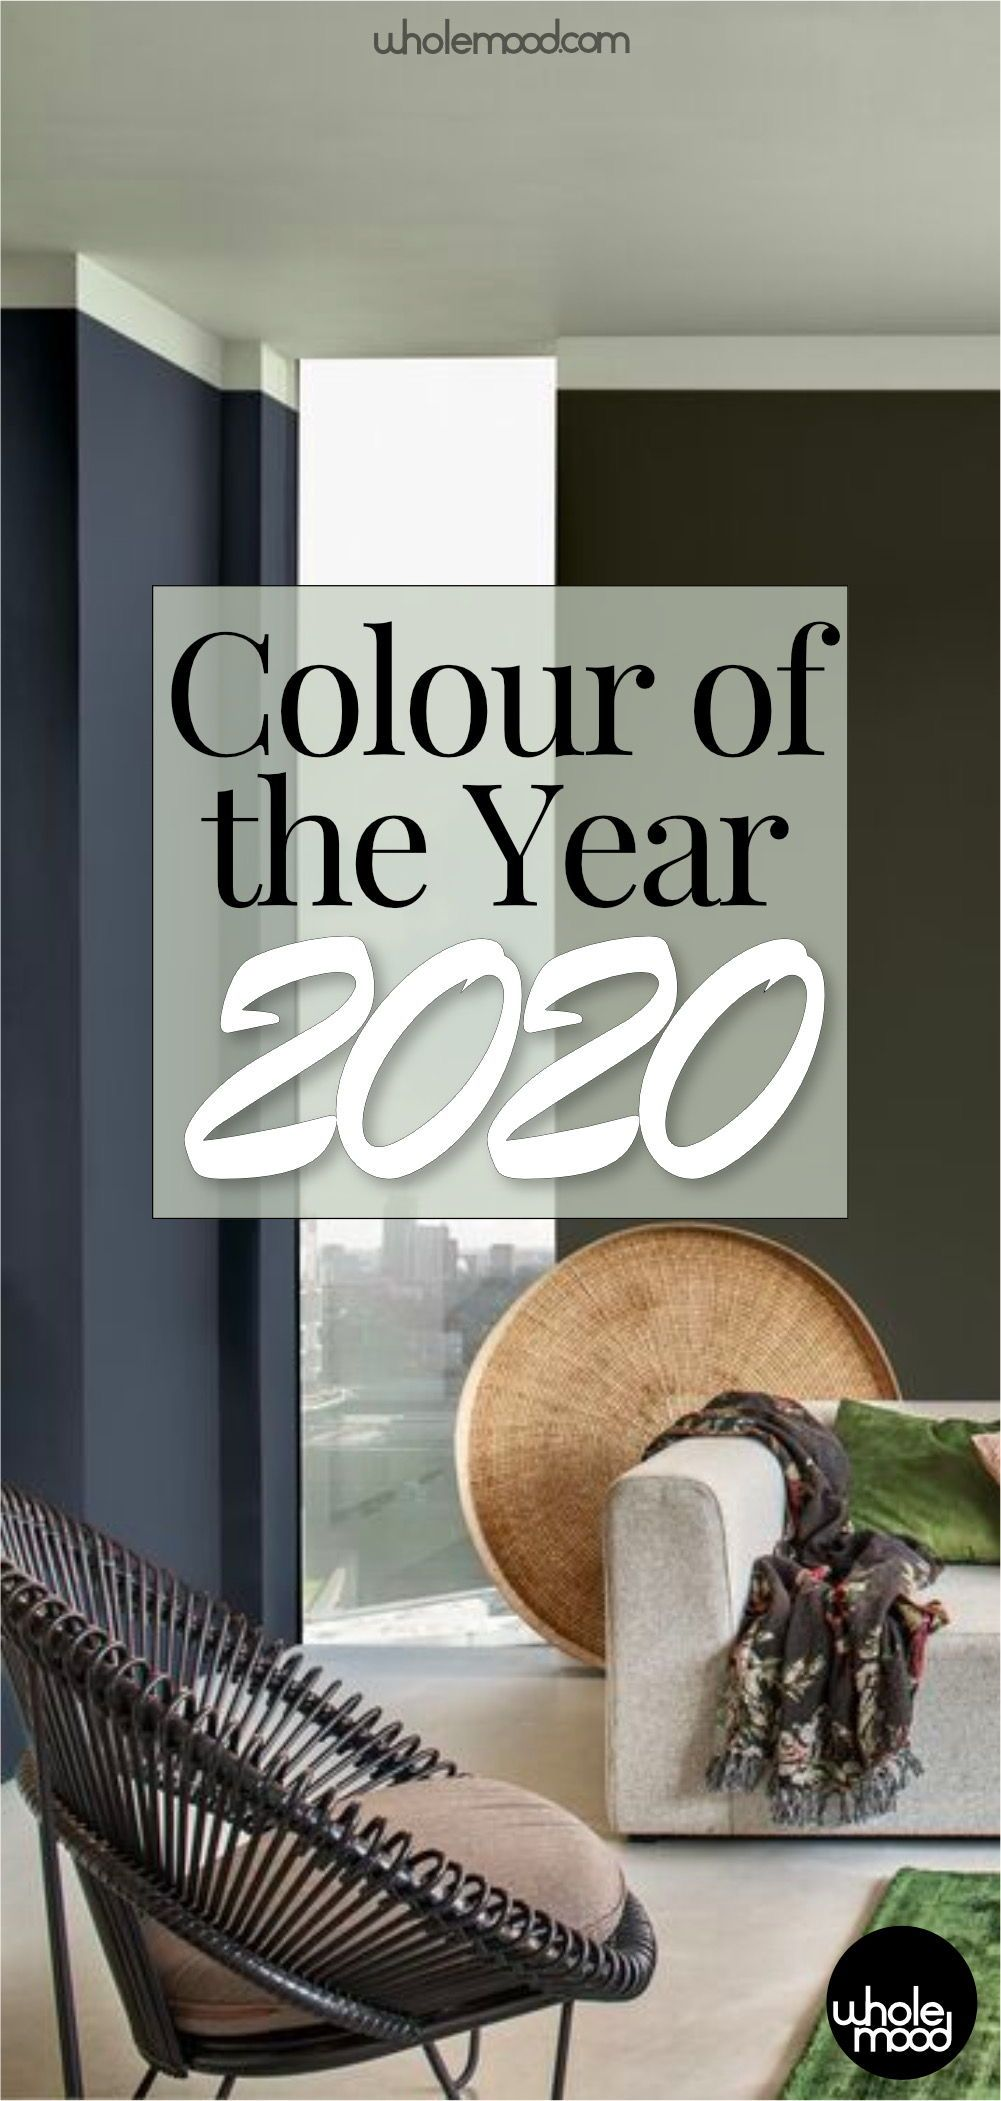 2020 2021 colour of the year new decade cool new tone on sherwin williams 2021 color trends id=89563